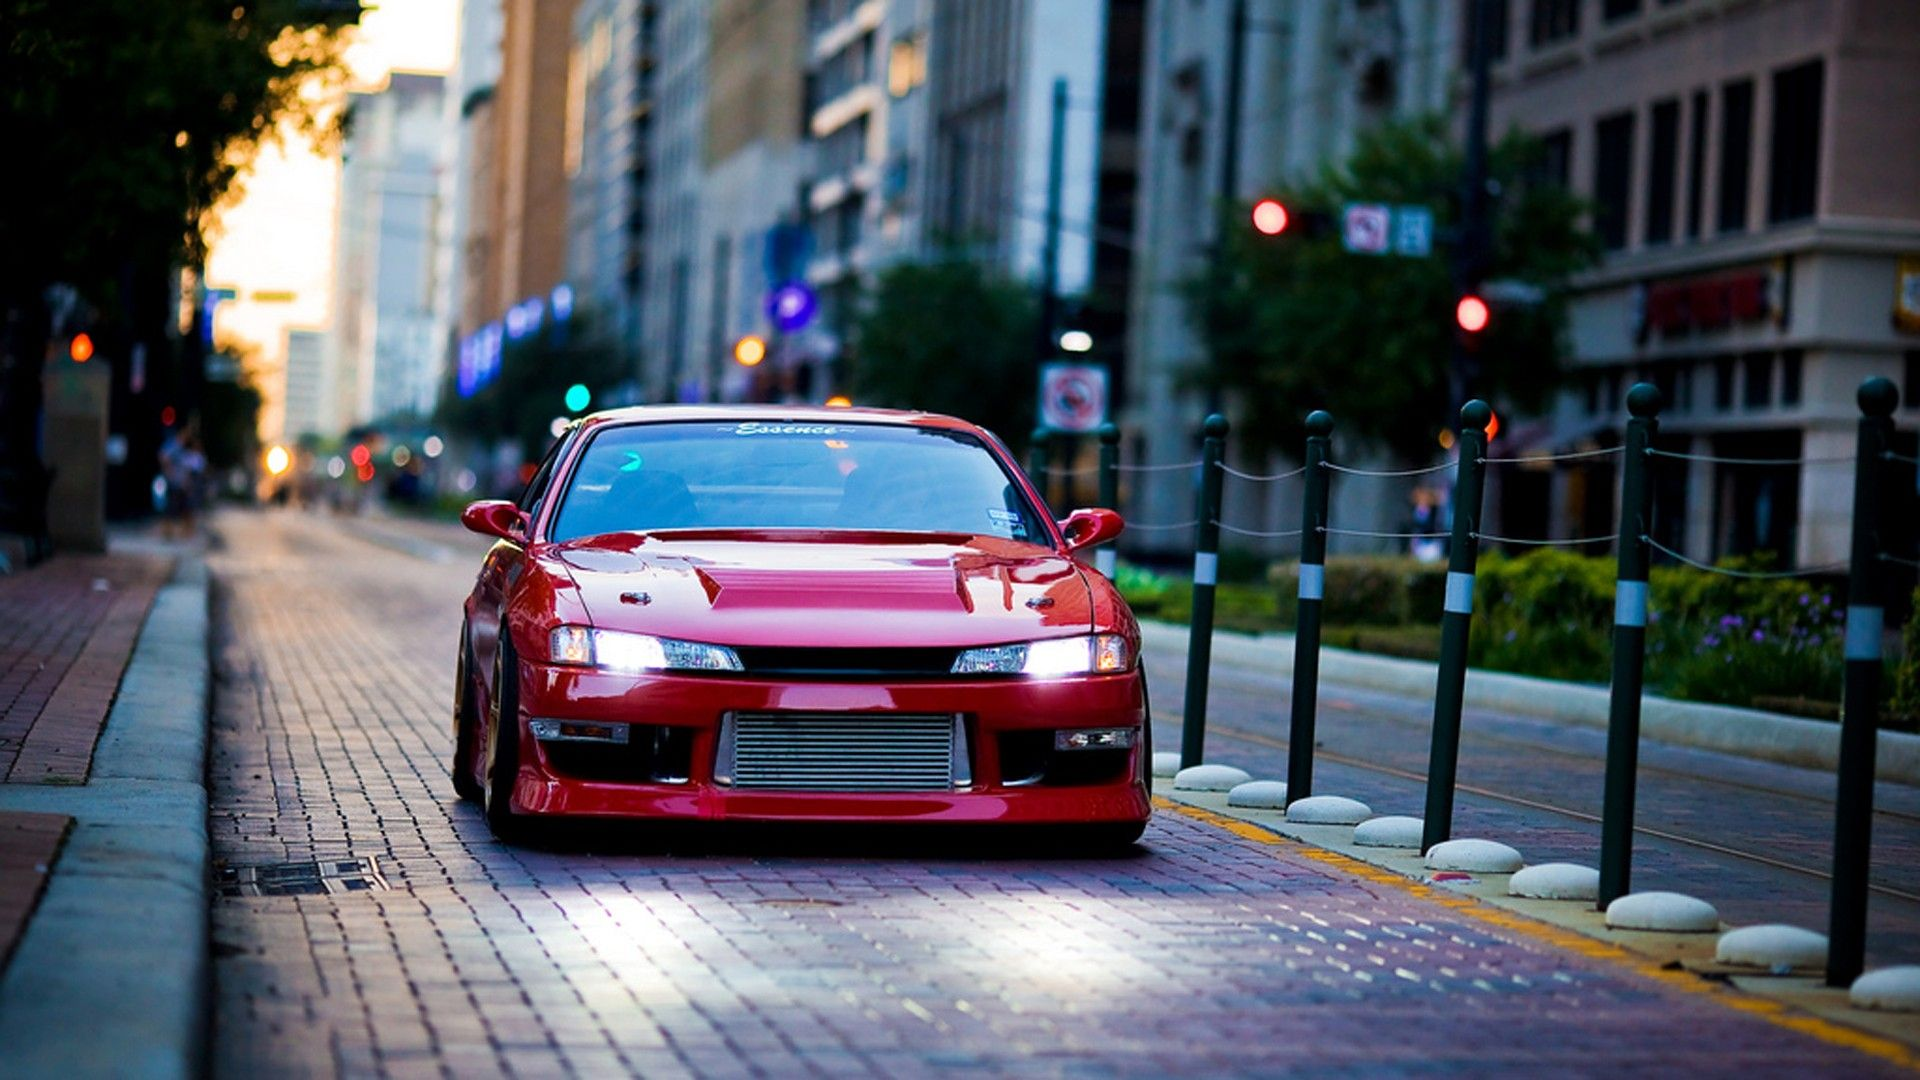 Silvia With Images Nissan Silvia Car Wallpapers Nissan 240sx